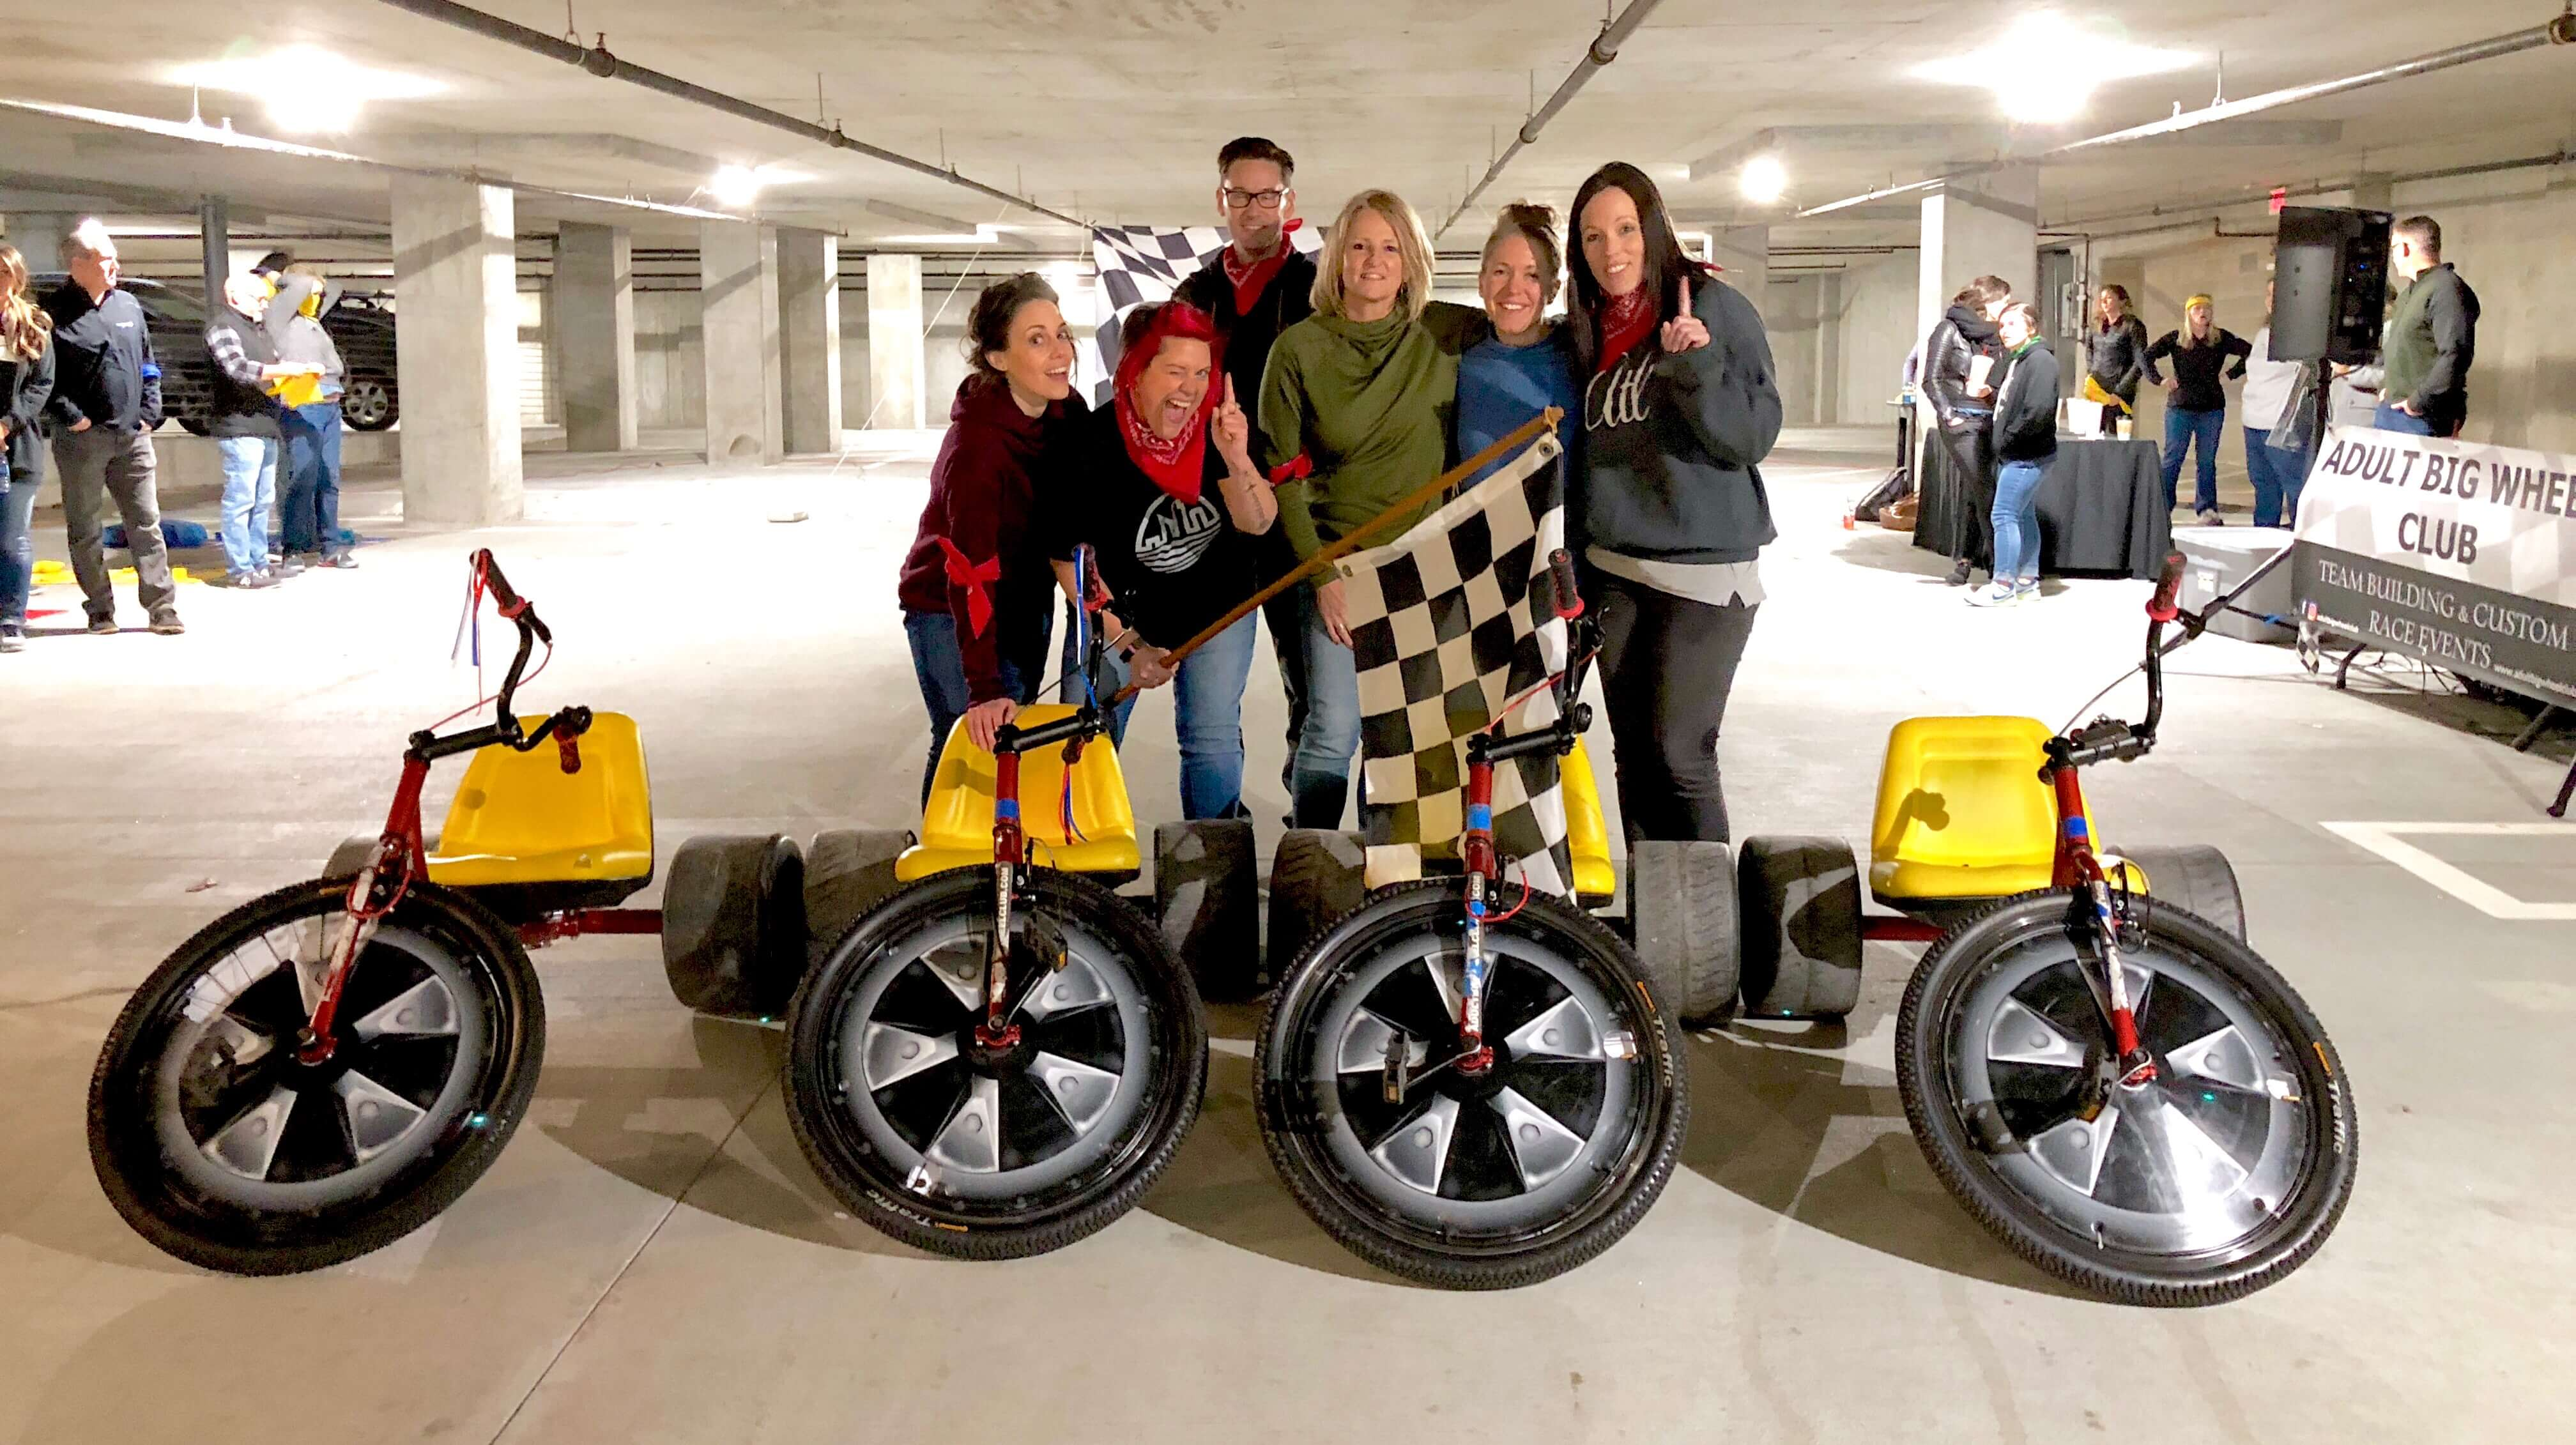 great team building event for church in Atlanta , rain didn't stop us , we used the parking garage !